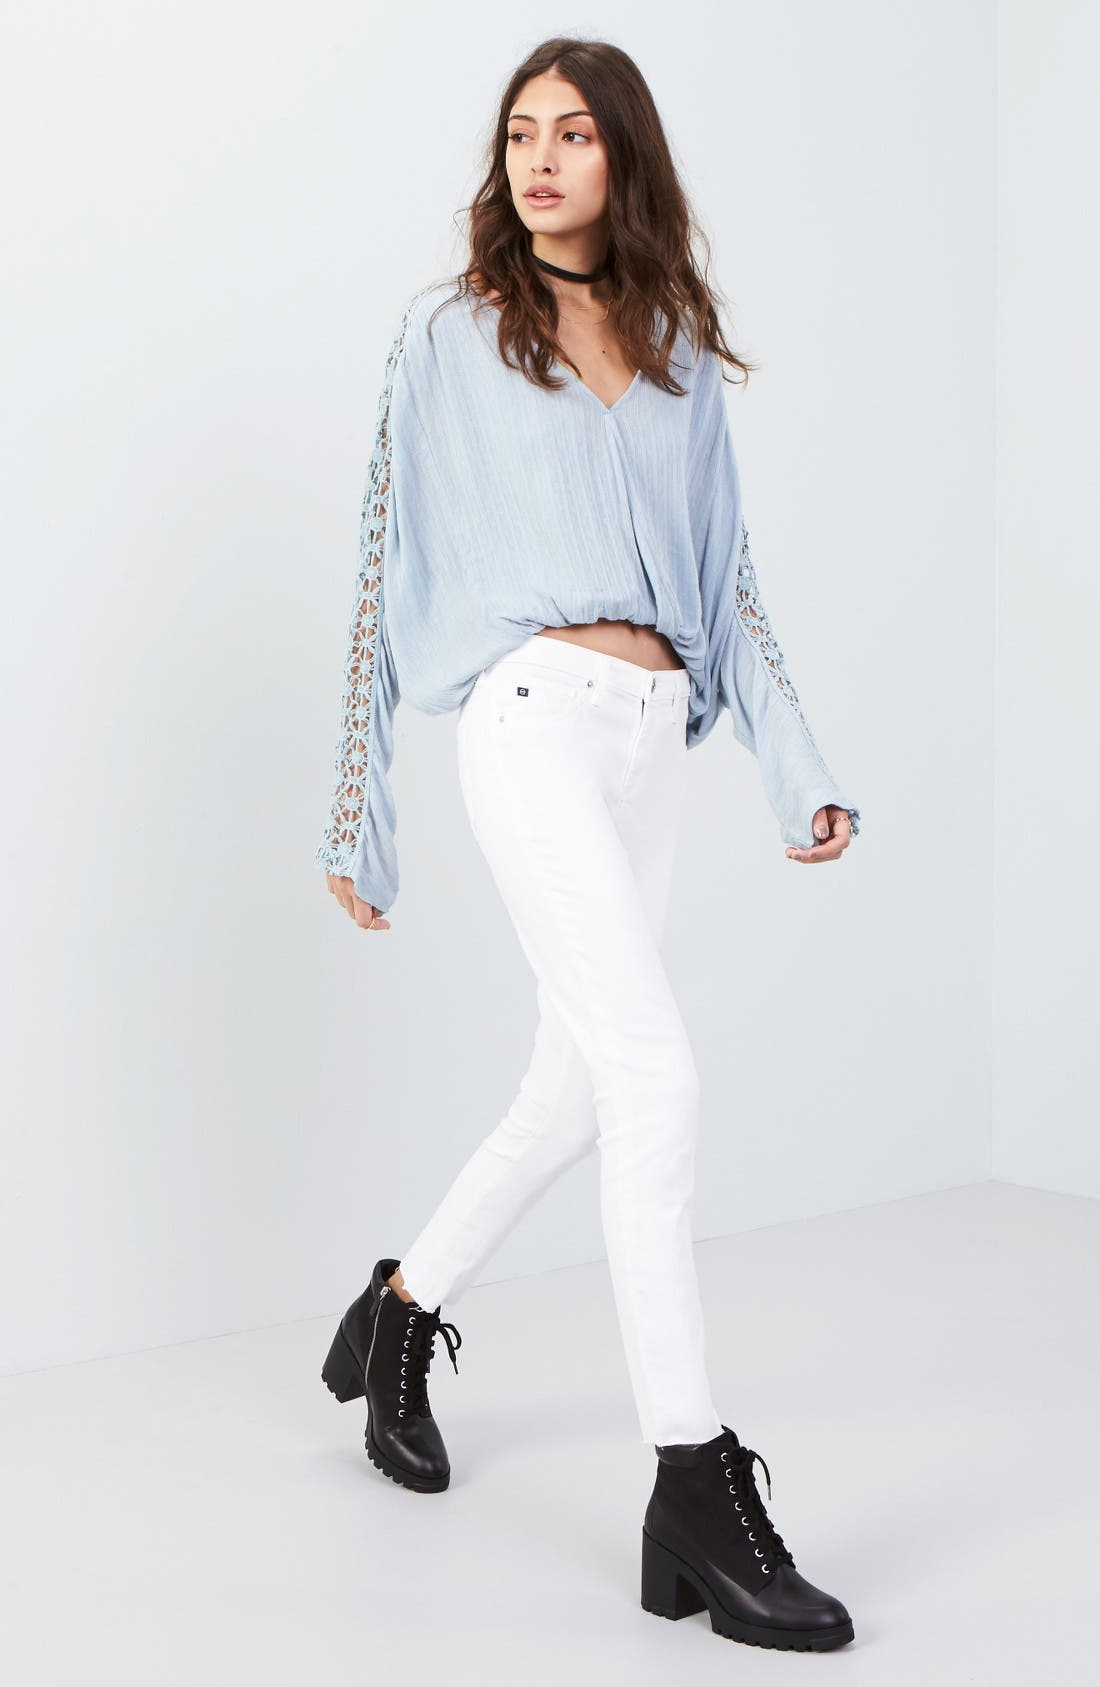 Free People Blouse & AG Jeans Outfit with Accessories